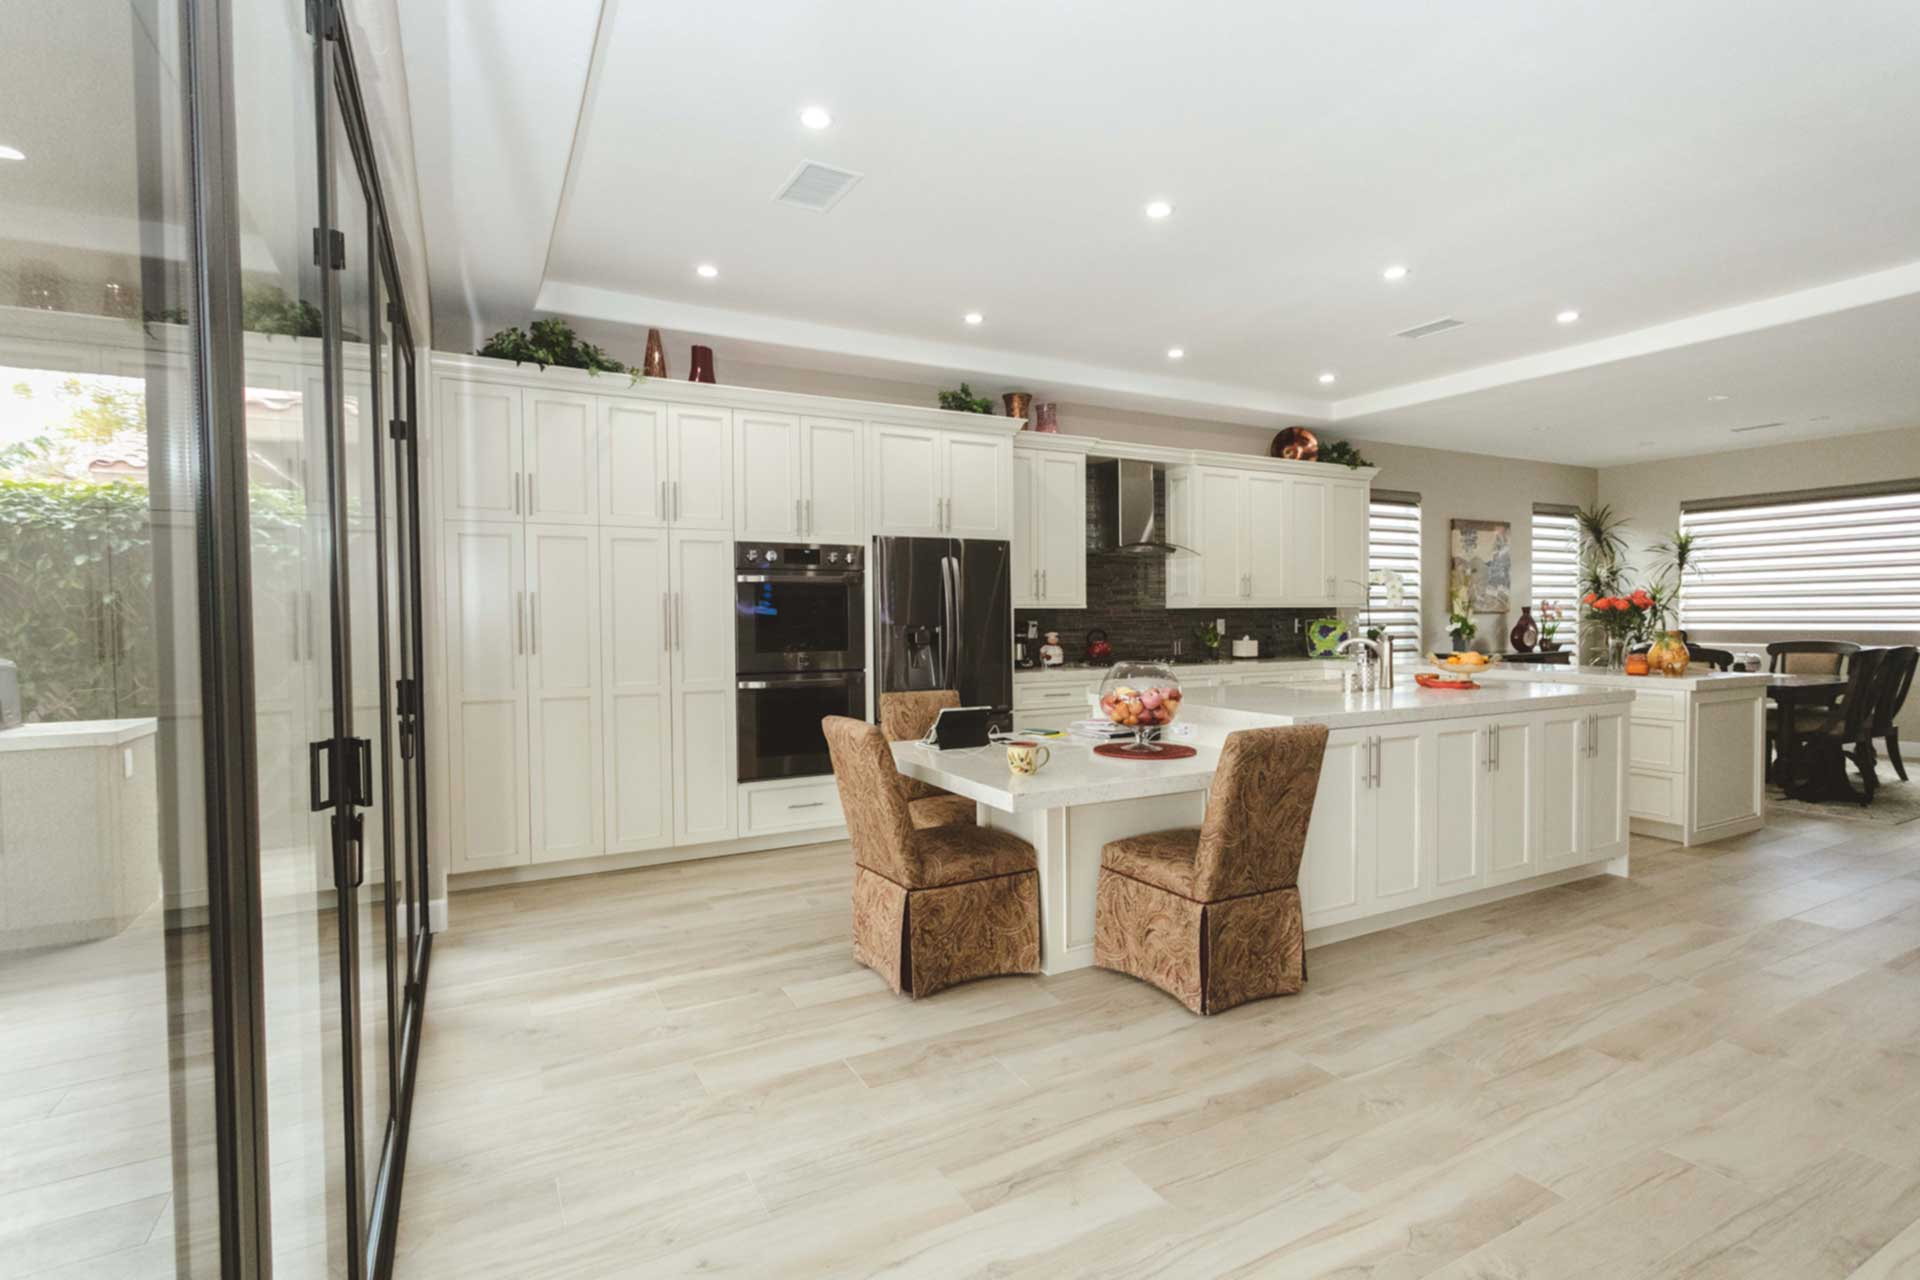 Ave Rosario Kitchen Outdoor Living Spaces Palm Desert Total